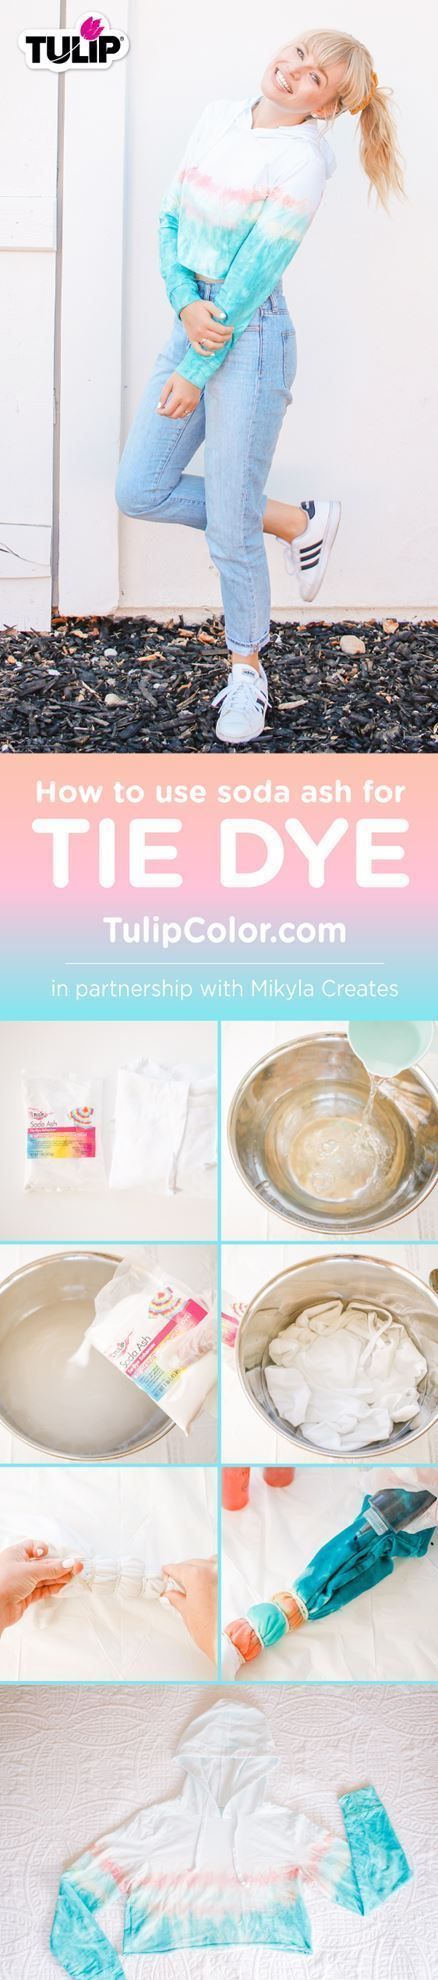 How to Use Soda Ash for Tie Dye